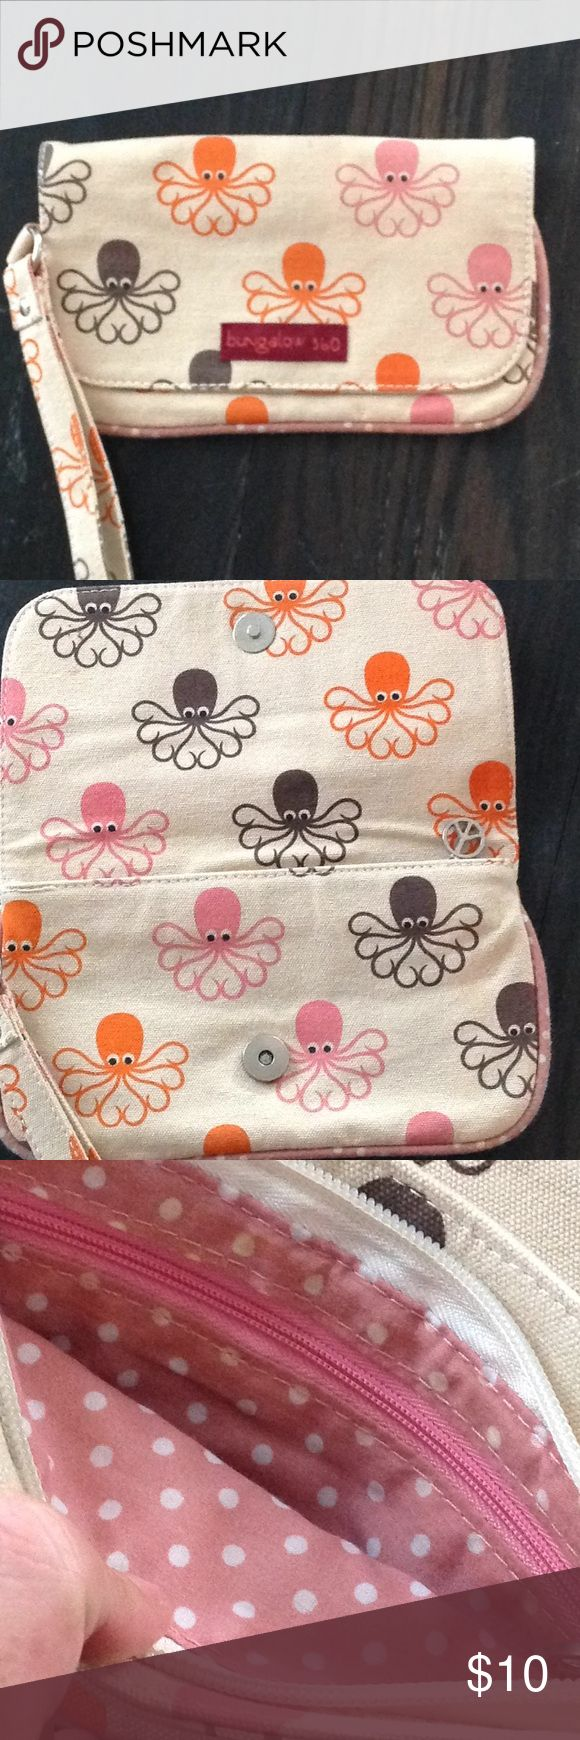 BUNGALOW 360 wristlet Cream with octopus print, fits phone and lots of stuff, zipper closure with interior zipper pocket, 8 3/4 x 5 bungalow 360 Bags Clutches & Wristlets